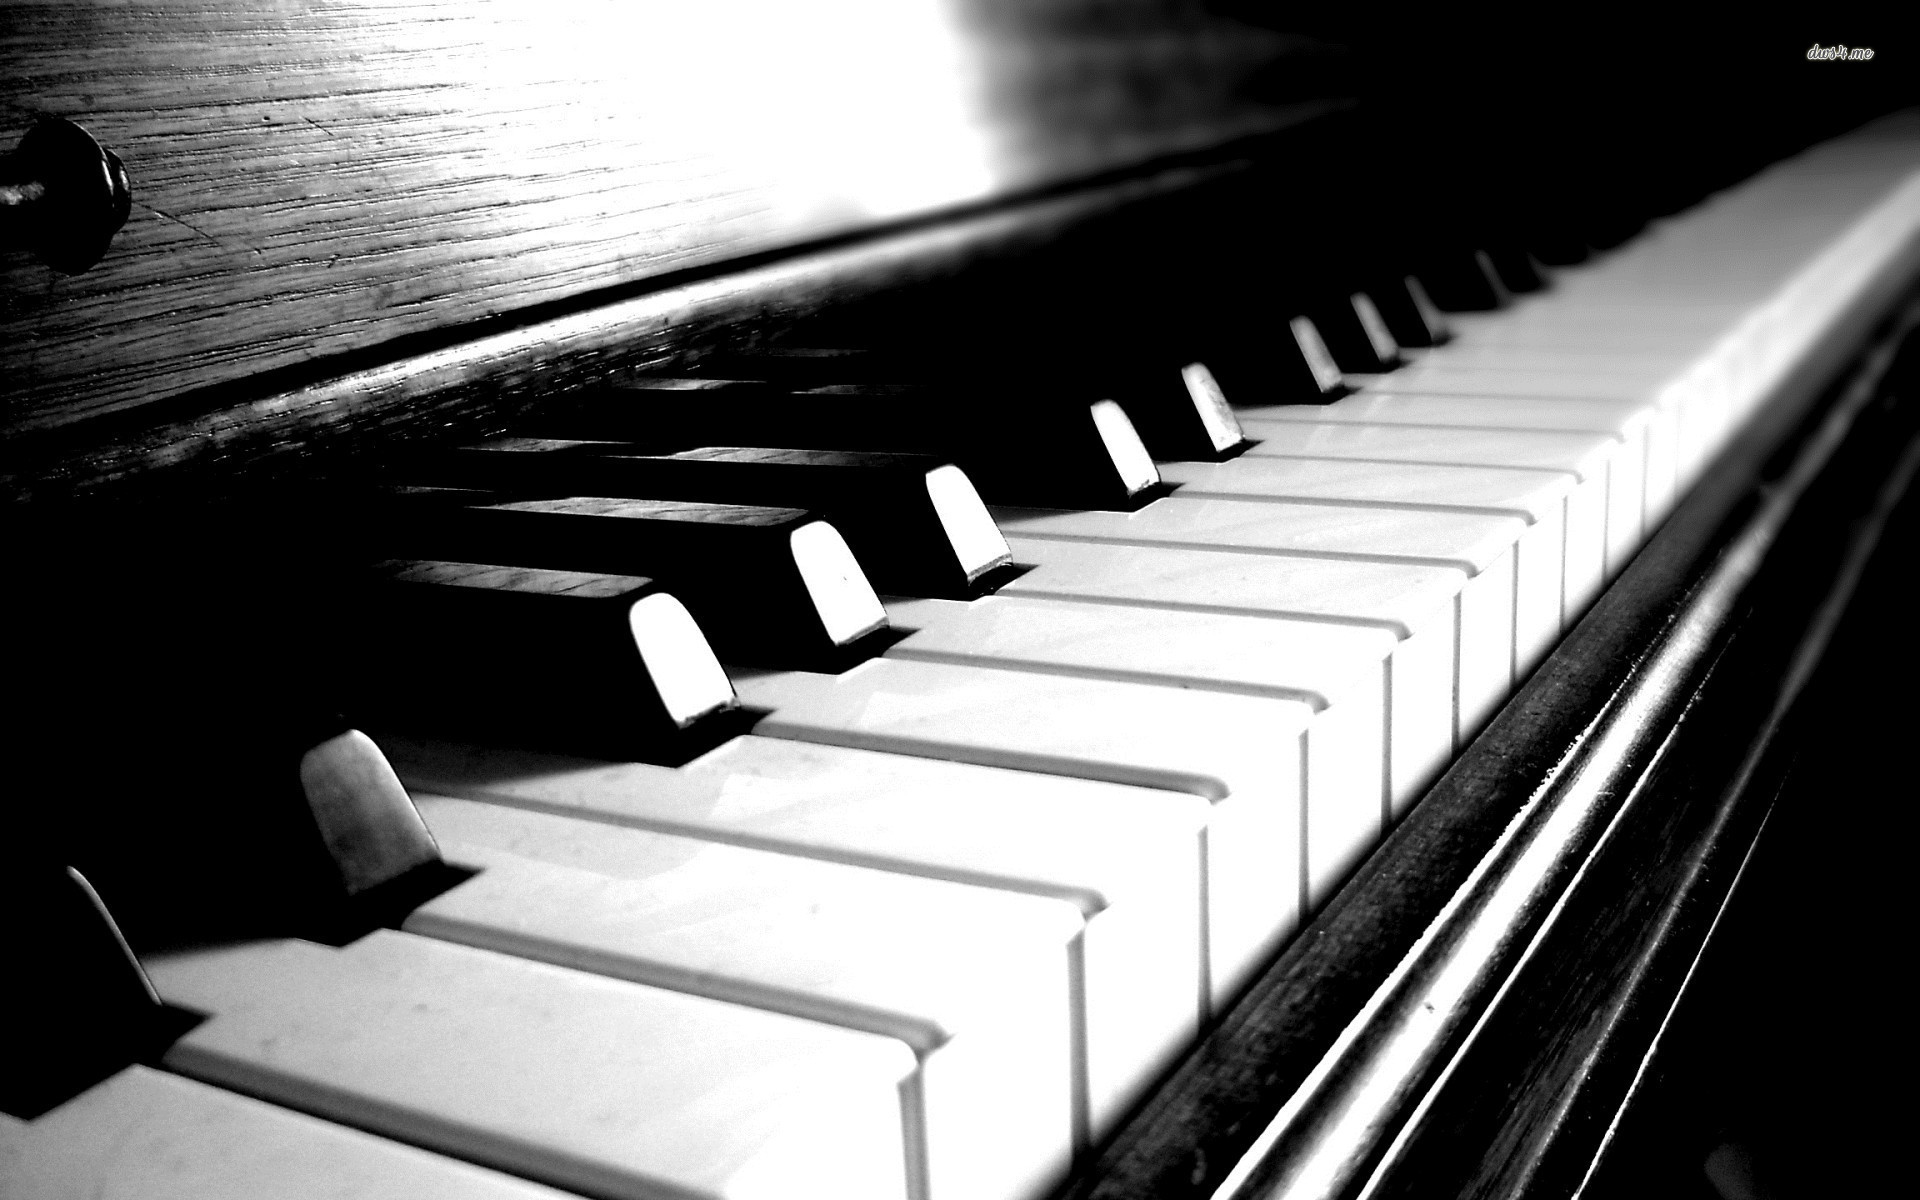 Piano wallpaper 1920x1200 59805 - Cool piano backgrounds ...